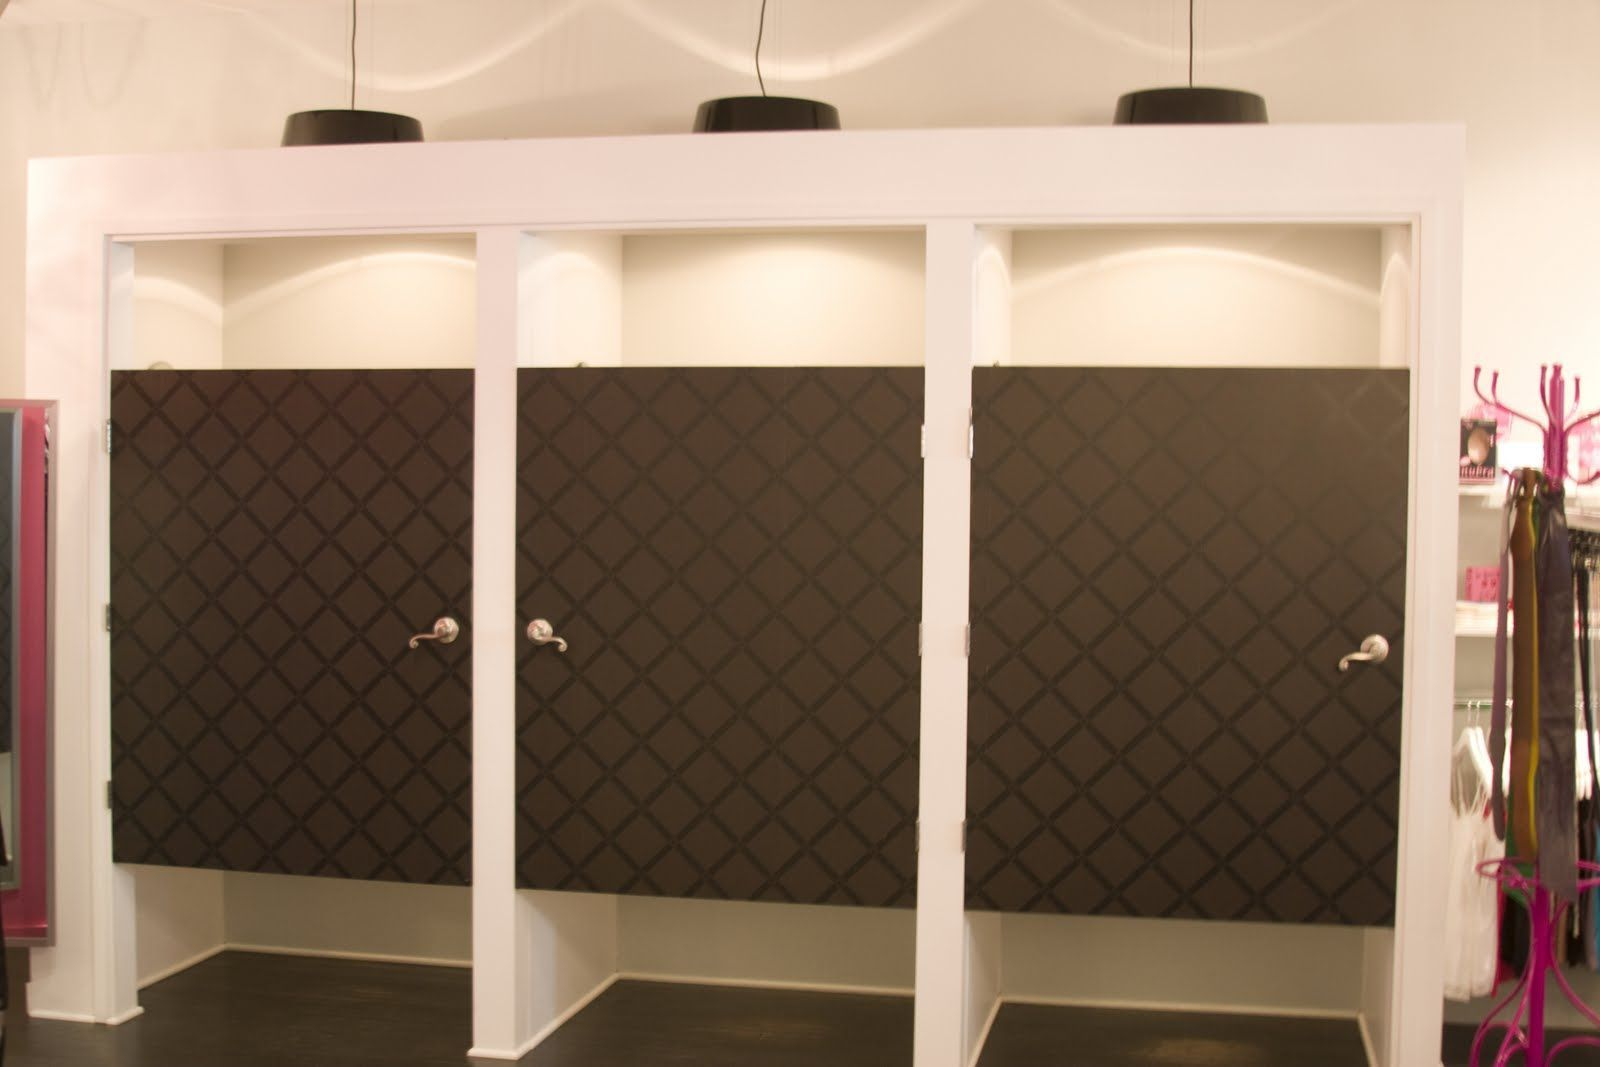 Retail Fitting Room Doors | Custom Changing Rooms with Customized Lighting and Doors & Retail Fitting Room Doors | Custom Changing Rooms with Customized ...